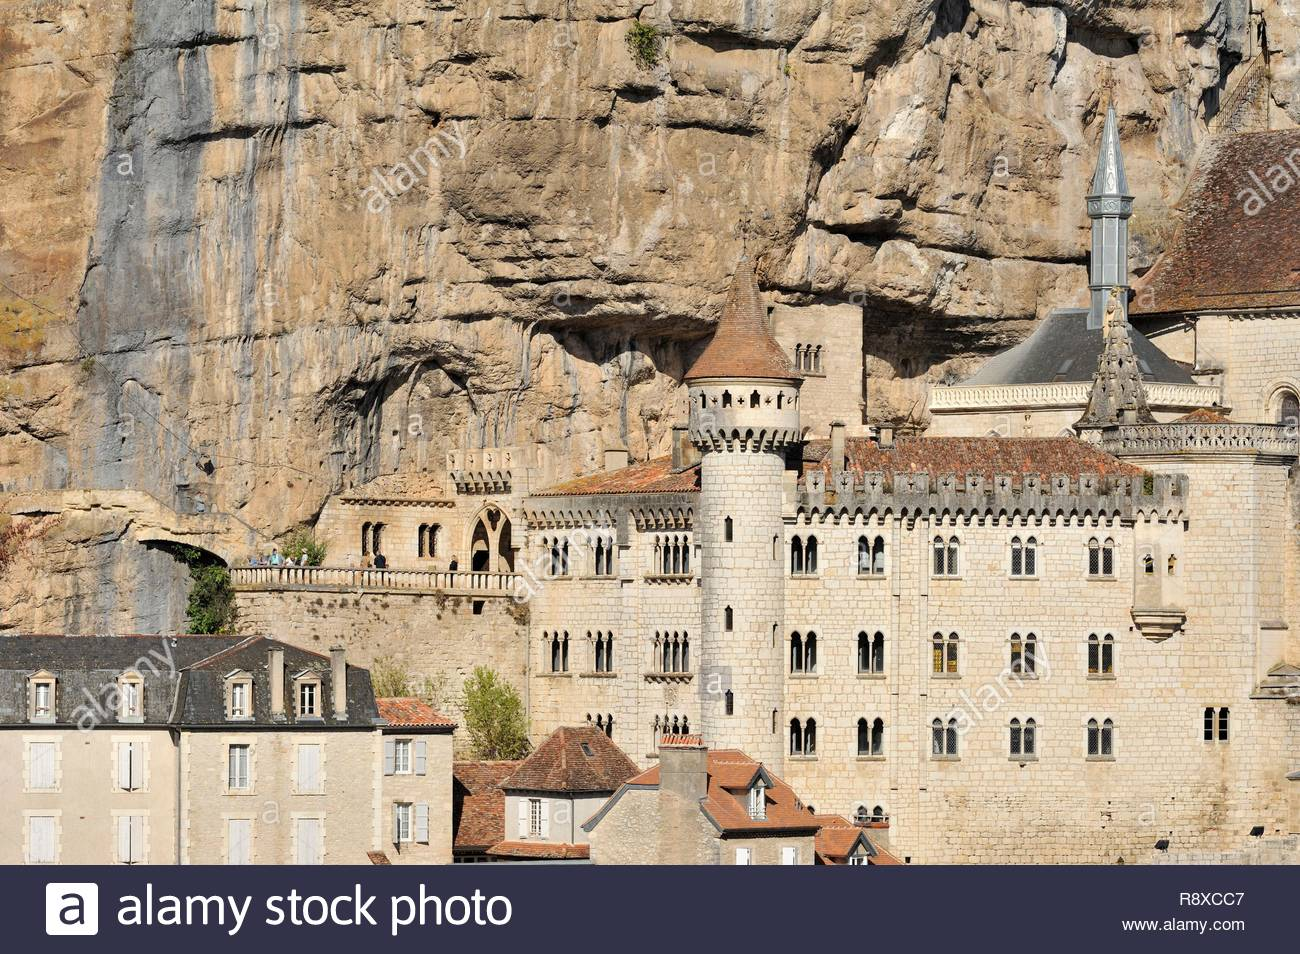 France, Lot, Haut Quercy, Rocamadour, medieval religious city with its sanctuaries and step of the road to Santiago de Compostela - Stock Image